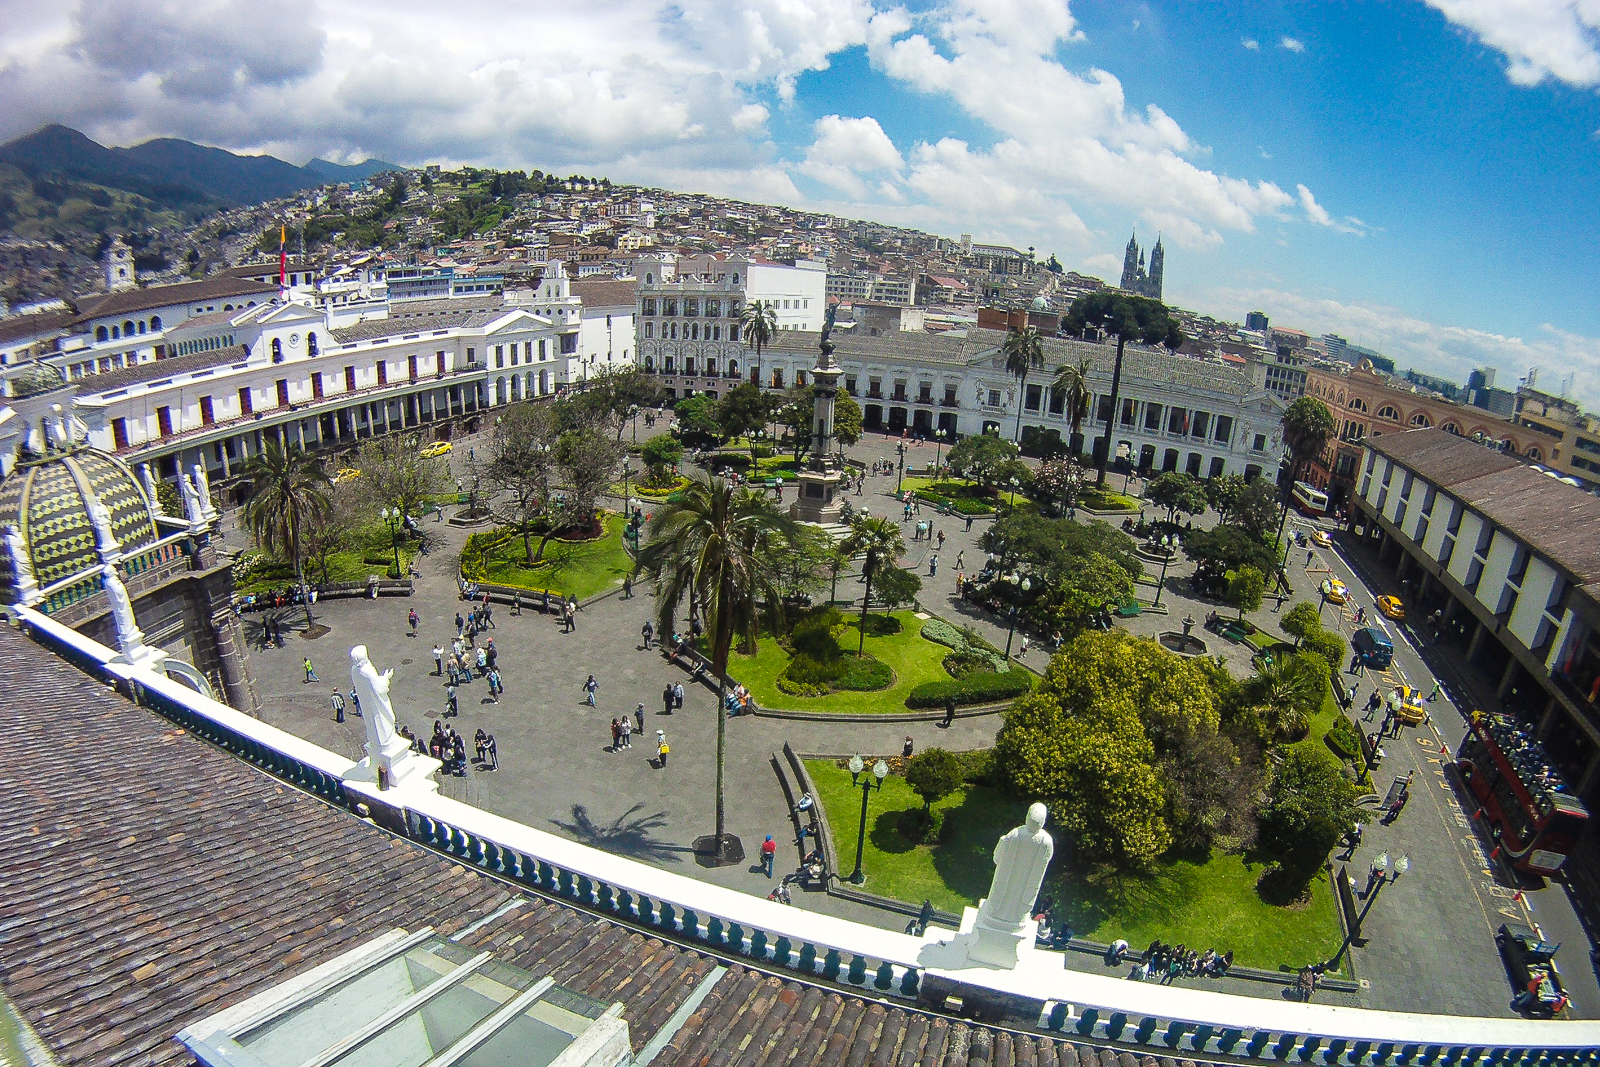 View of Plaza Grande Quito from the roof of Quito Cathedral. Top things to do in Quito.